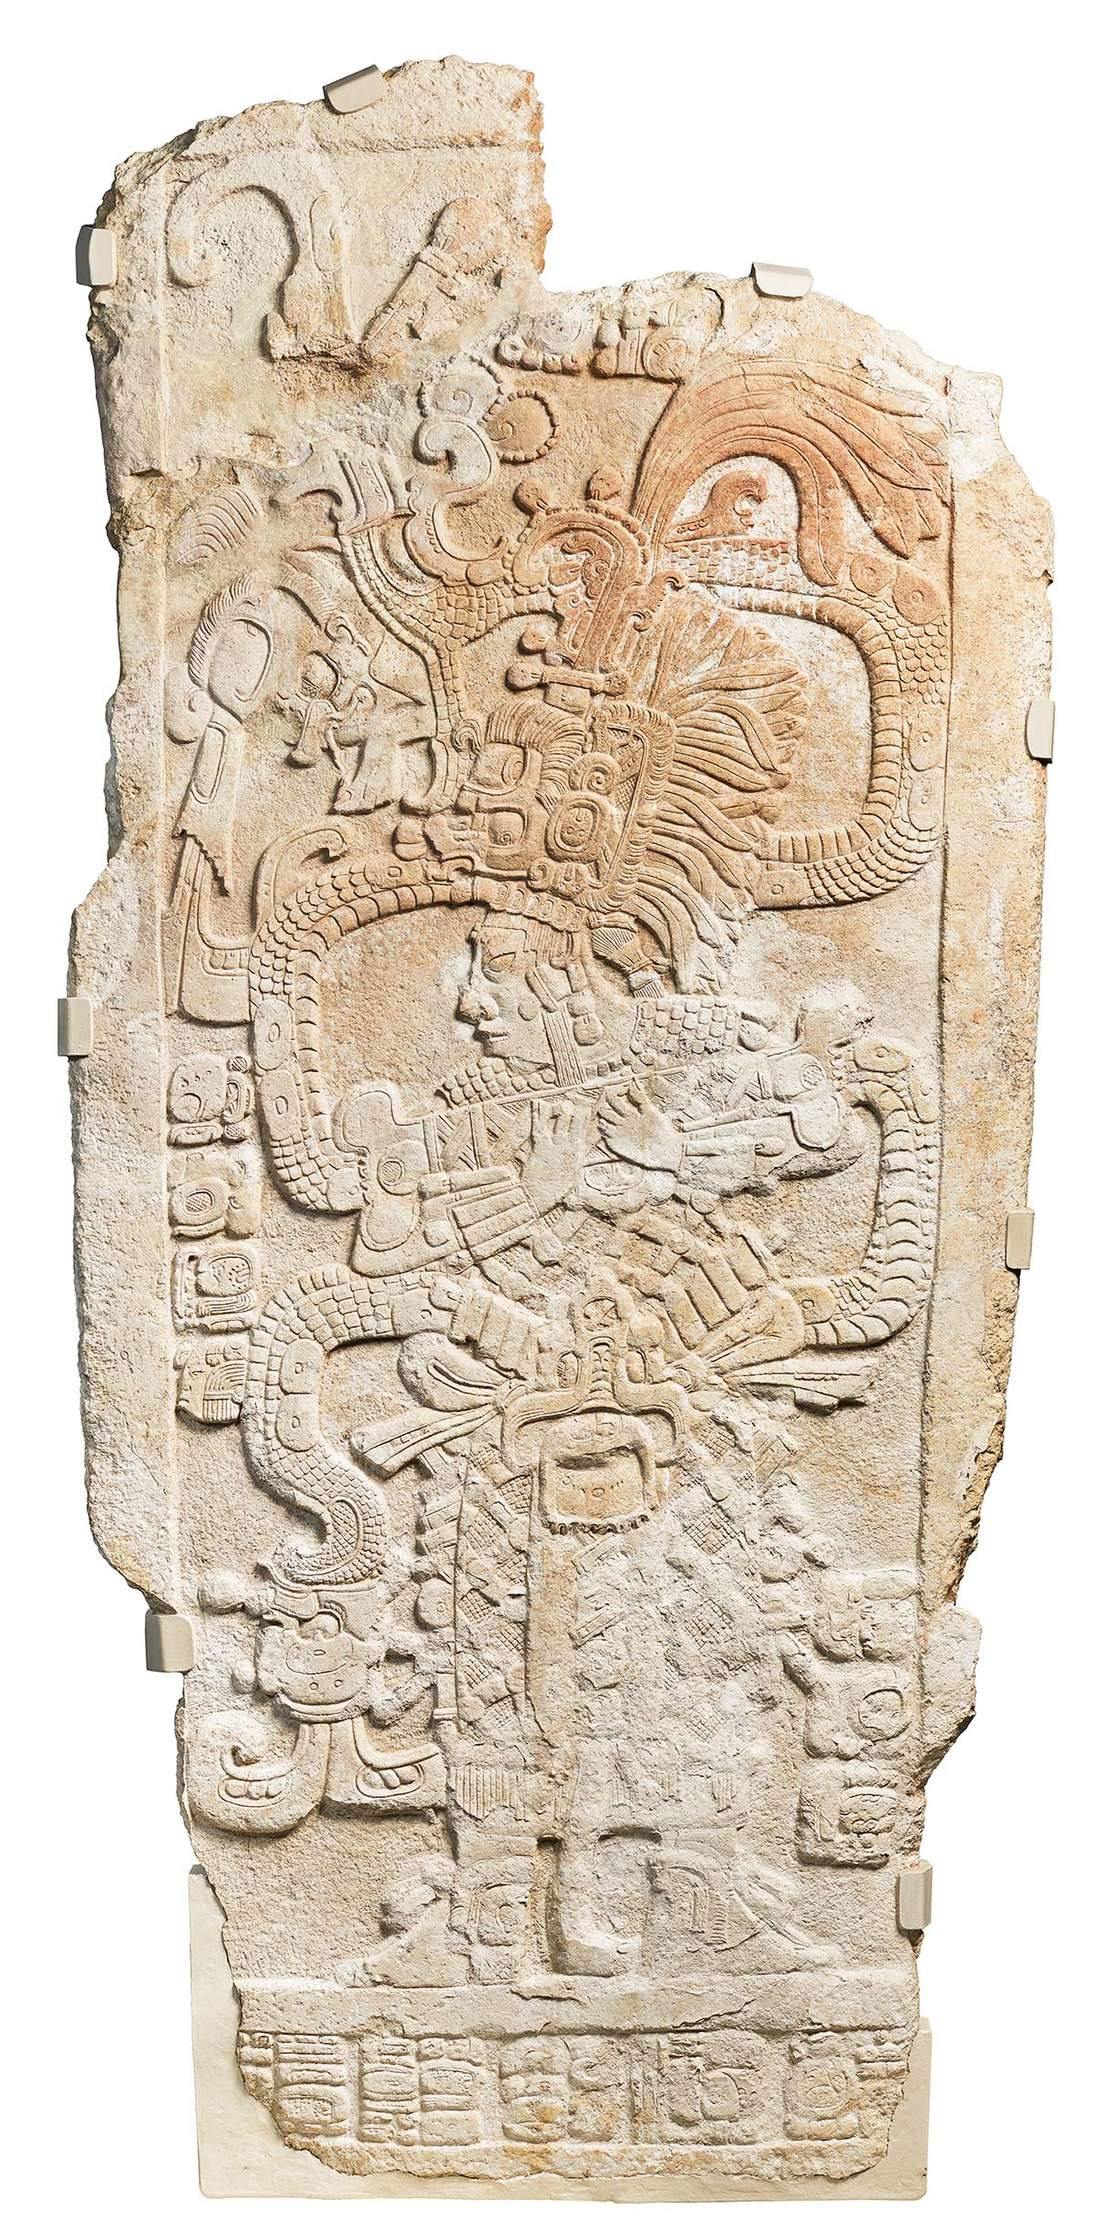 Stela with Queen Ix Mutal Ahaw, 761 AD. Mexico or Guatemala, southern lowlands. Limestone, 92 x 45 x 3 in. (233.7 x 114.3 x 7.6 cm). Fine Arts Museums of San Francisco, Museum purchase, Gift of Mrs. Paul L. Wattis, 1999.42